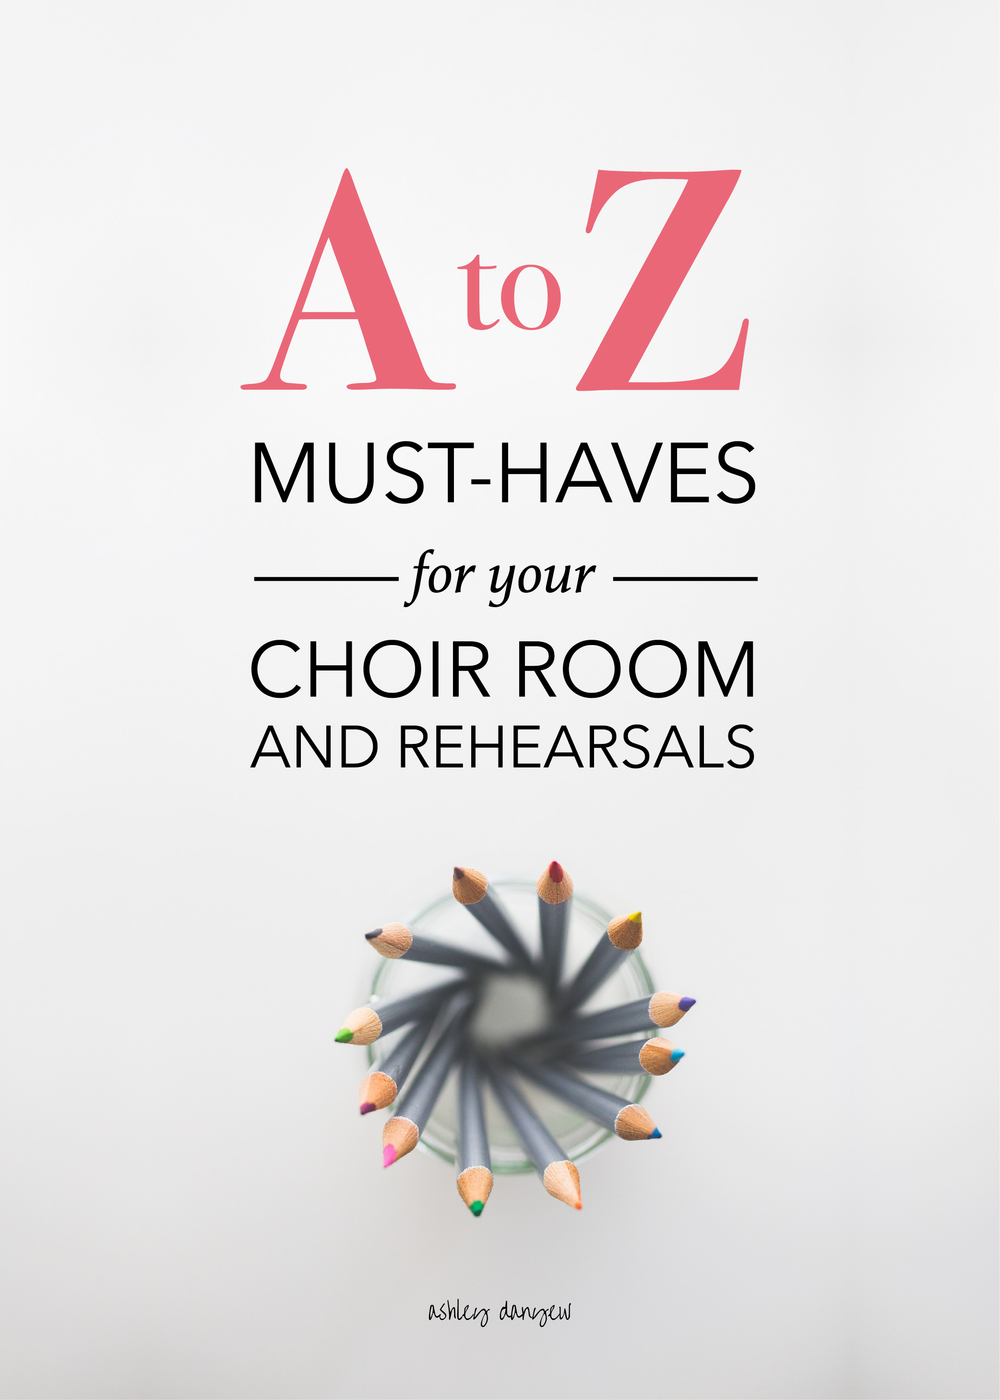 Copy of A to Z: Must-Haves for Your Choir Room and Rehearsals